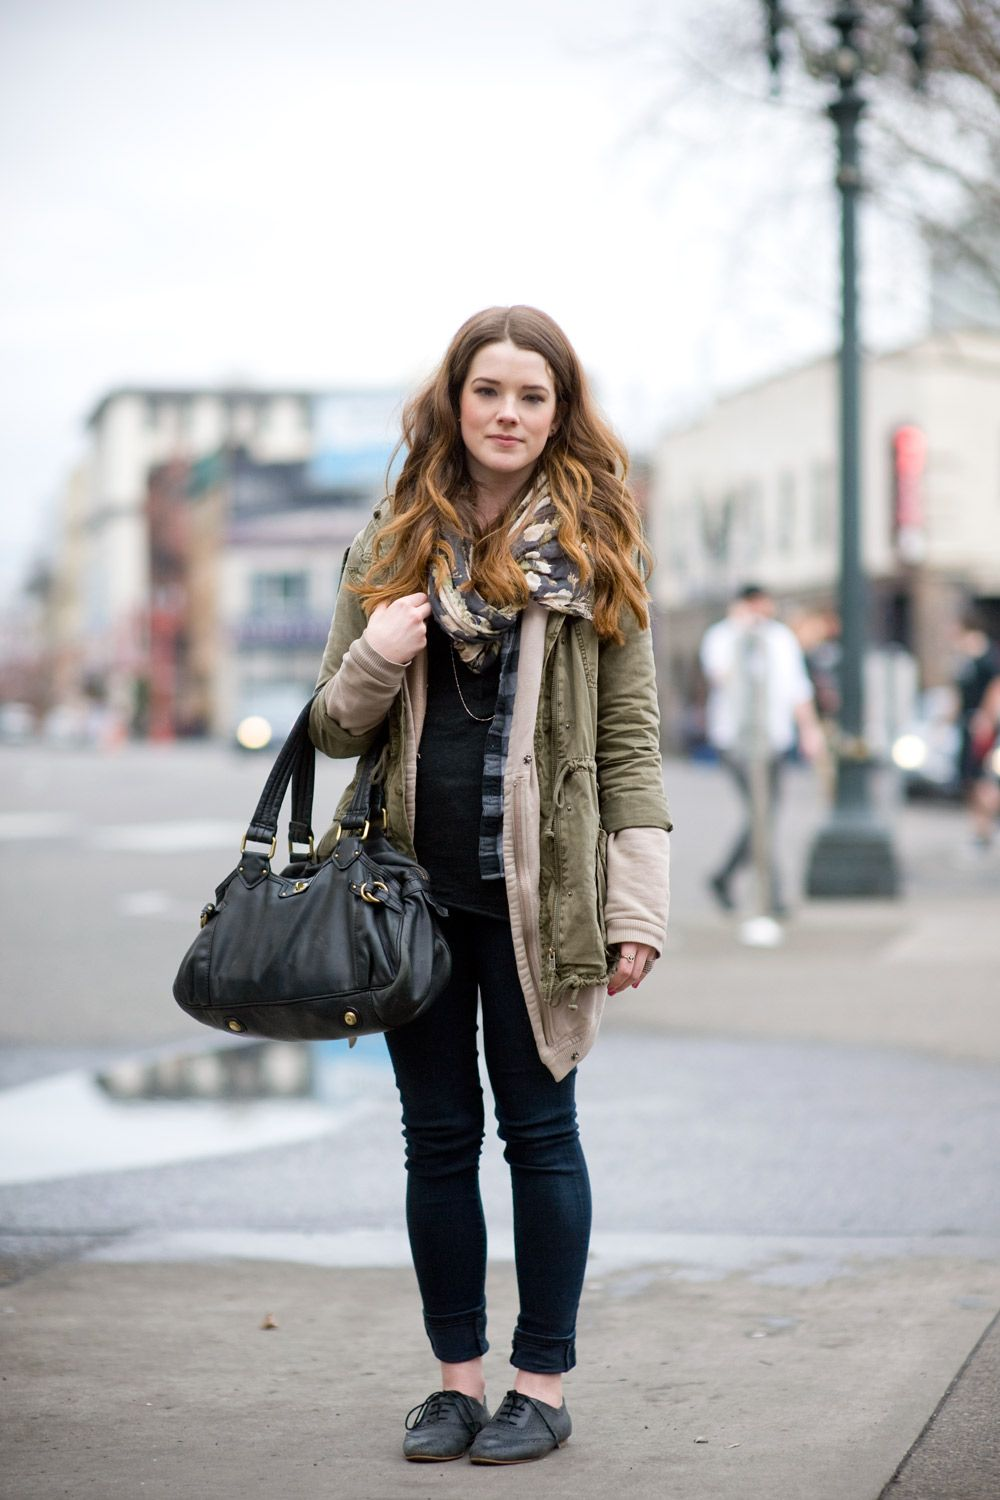 Urban Weeds Street Style From Portland Oregon I Want To